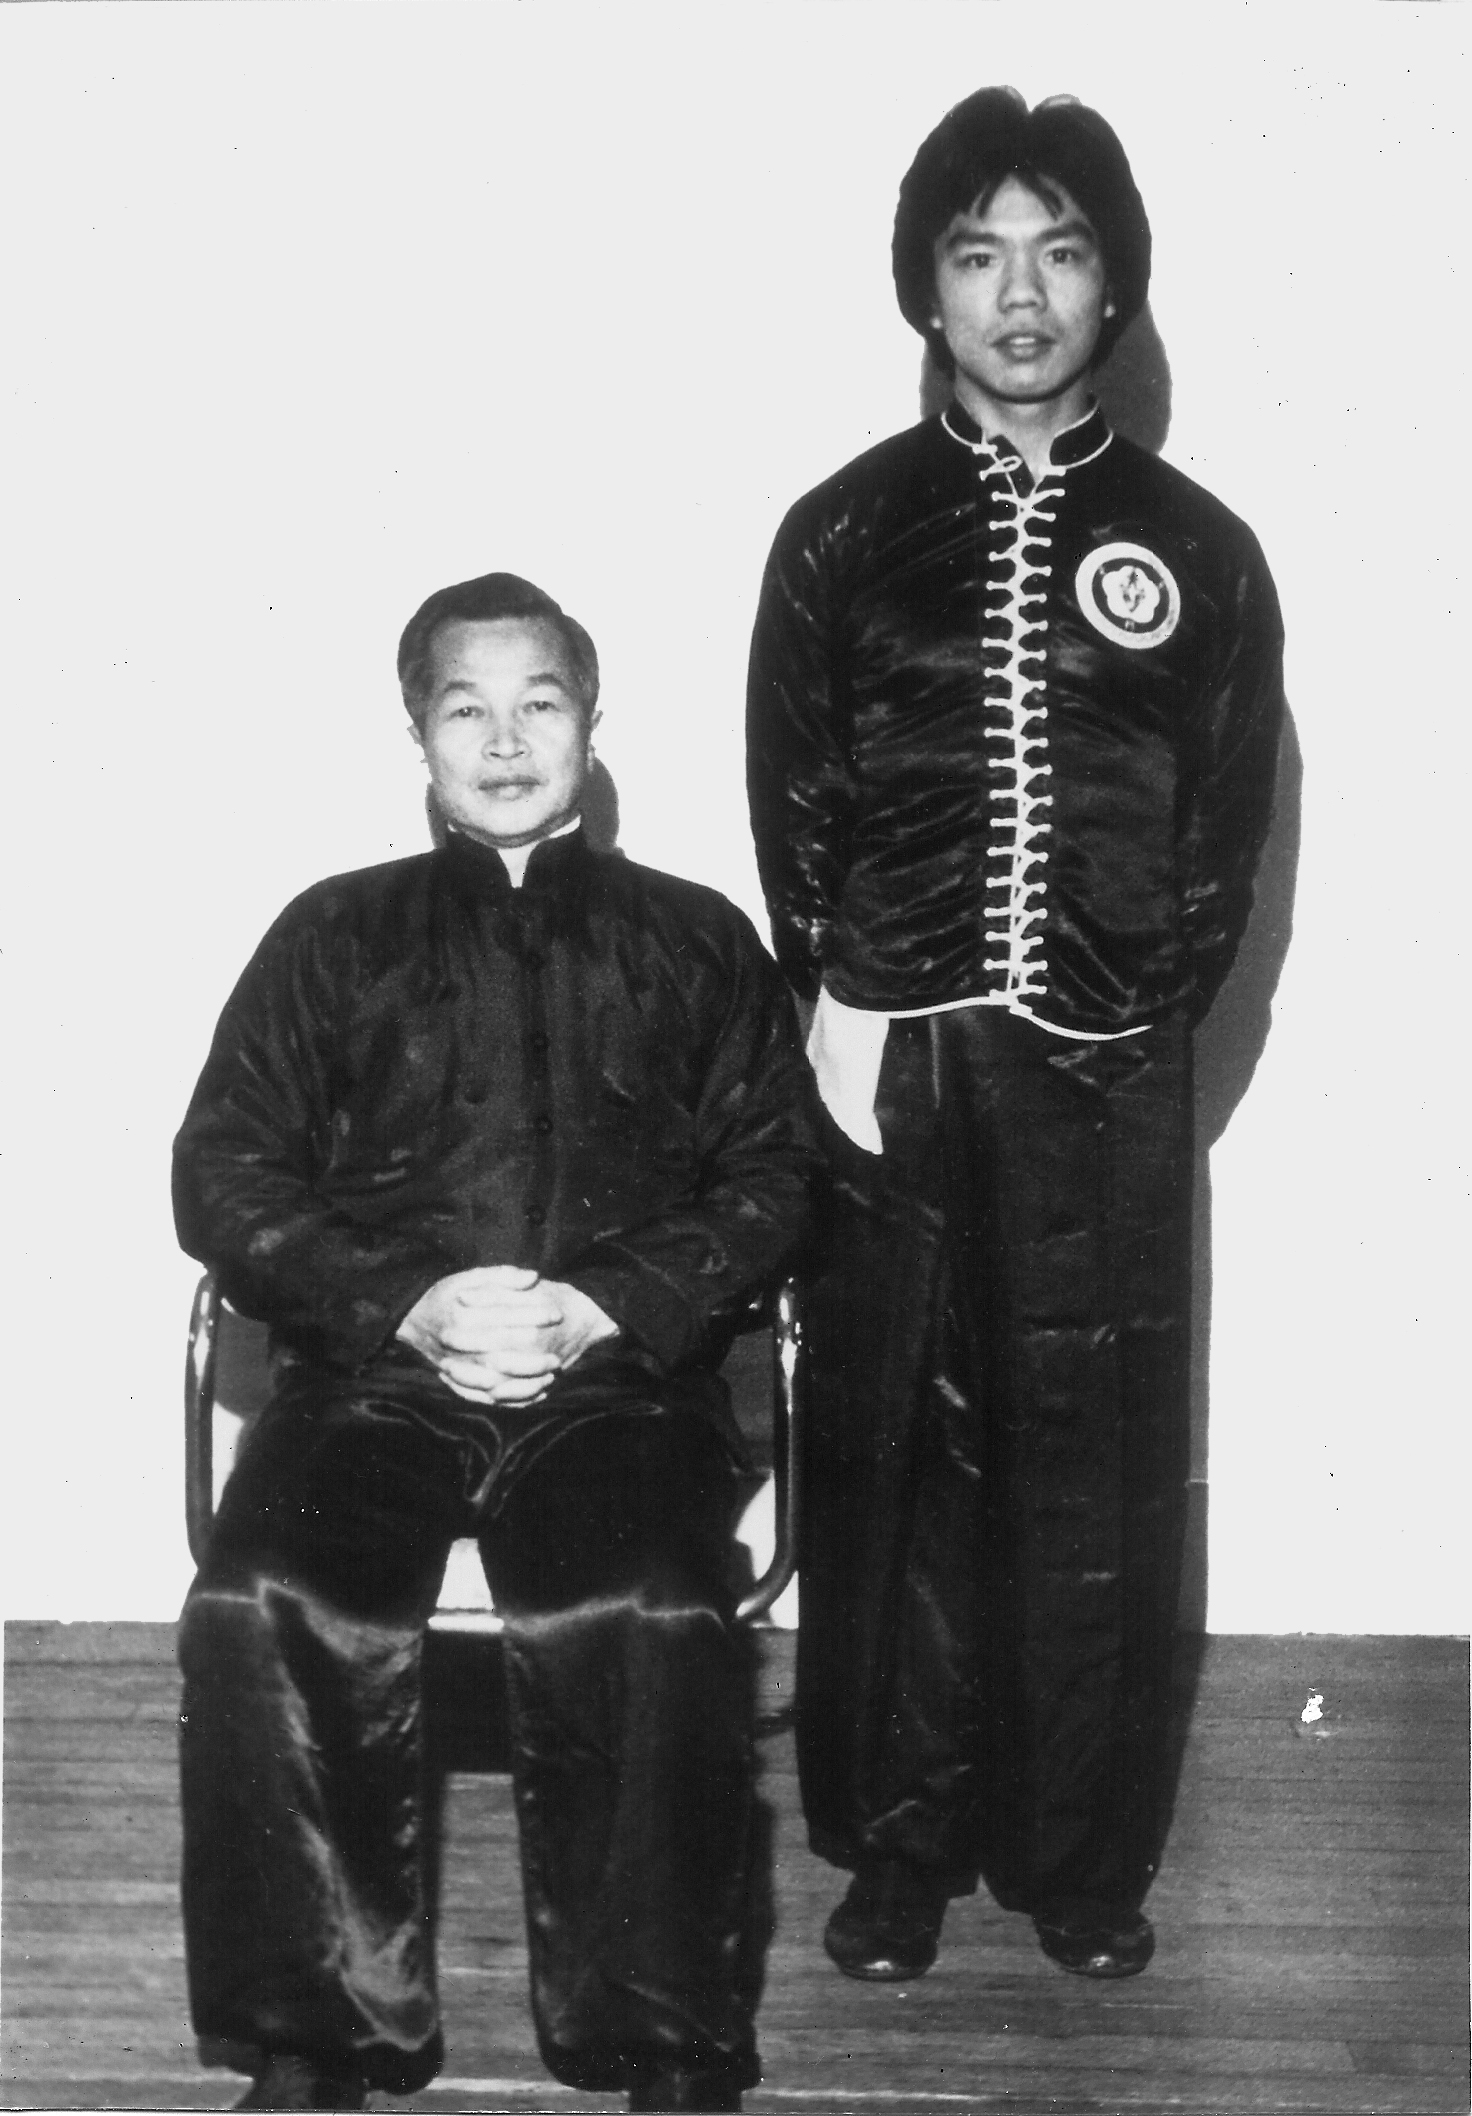 Kwong Tit Fu (seated) and Calvin Chin